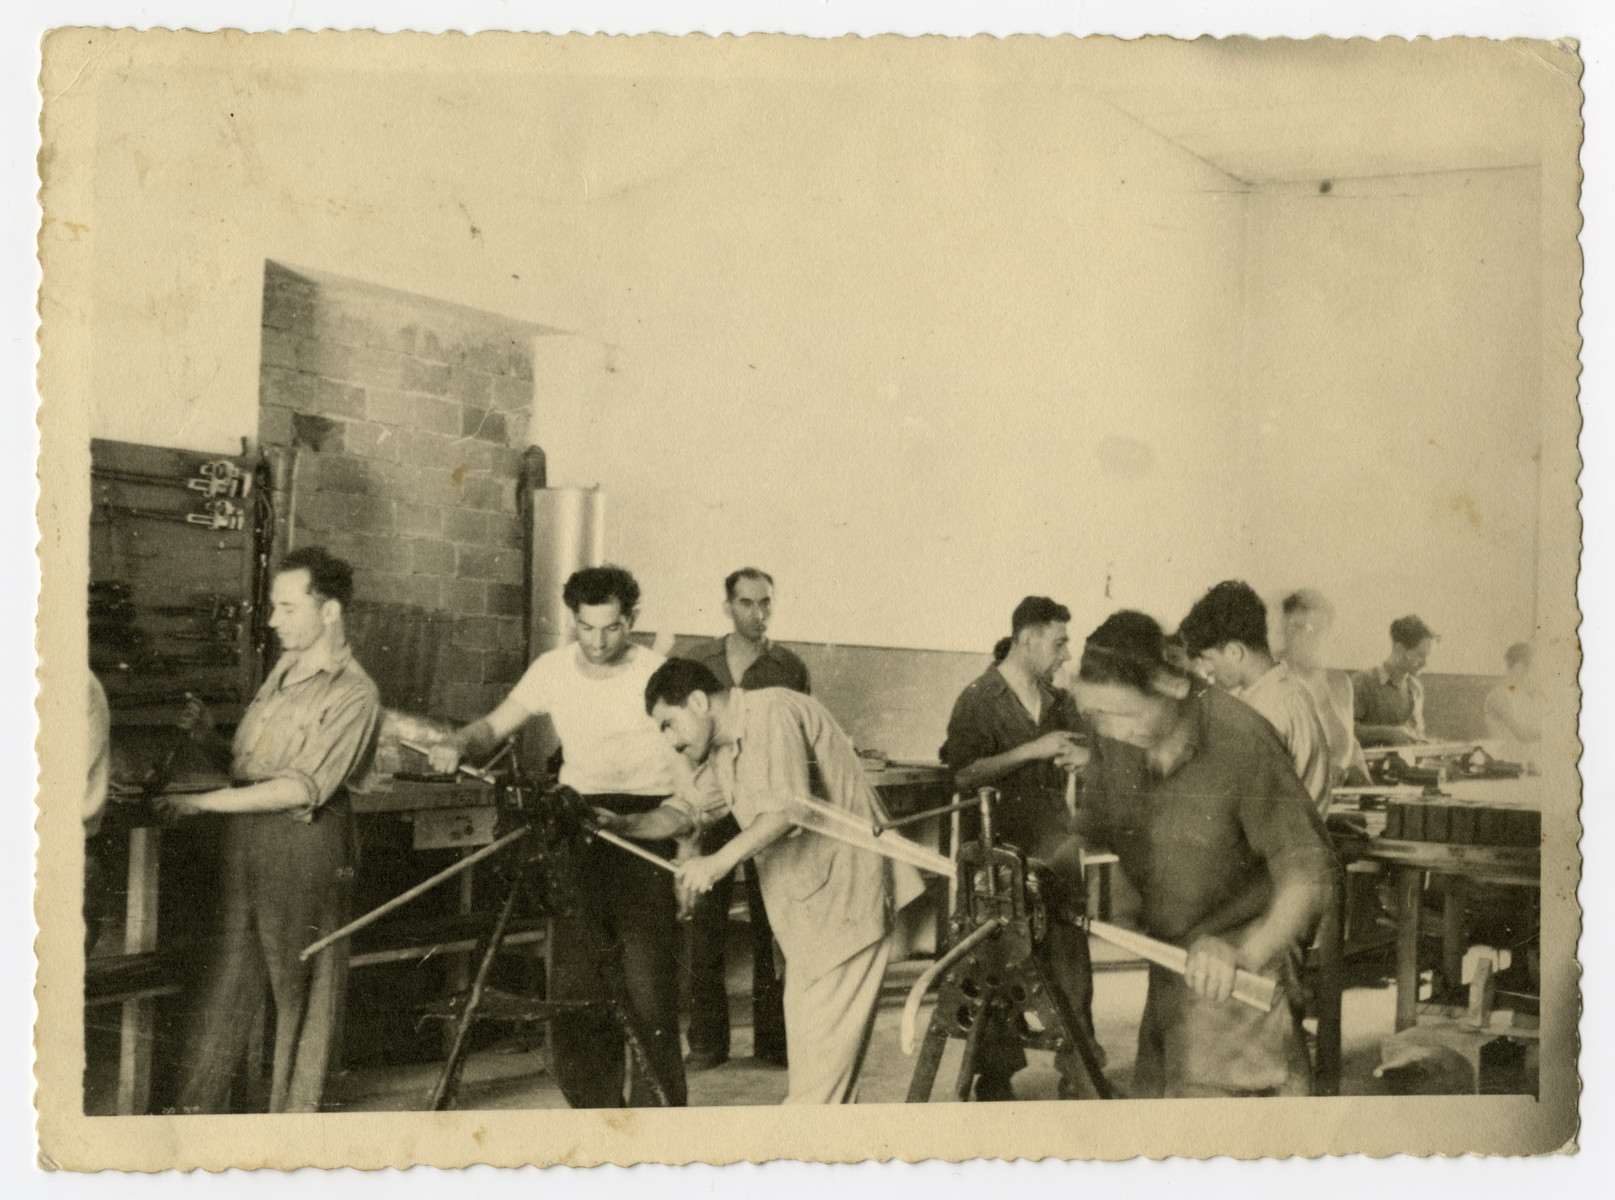 David Levi teaches plumbing to Jewish survivors in the Bagnoli displaced persons camp.